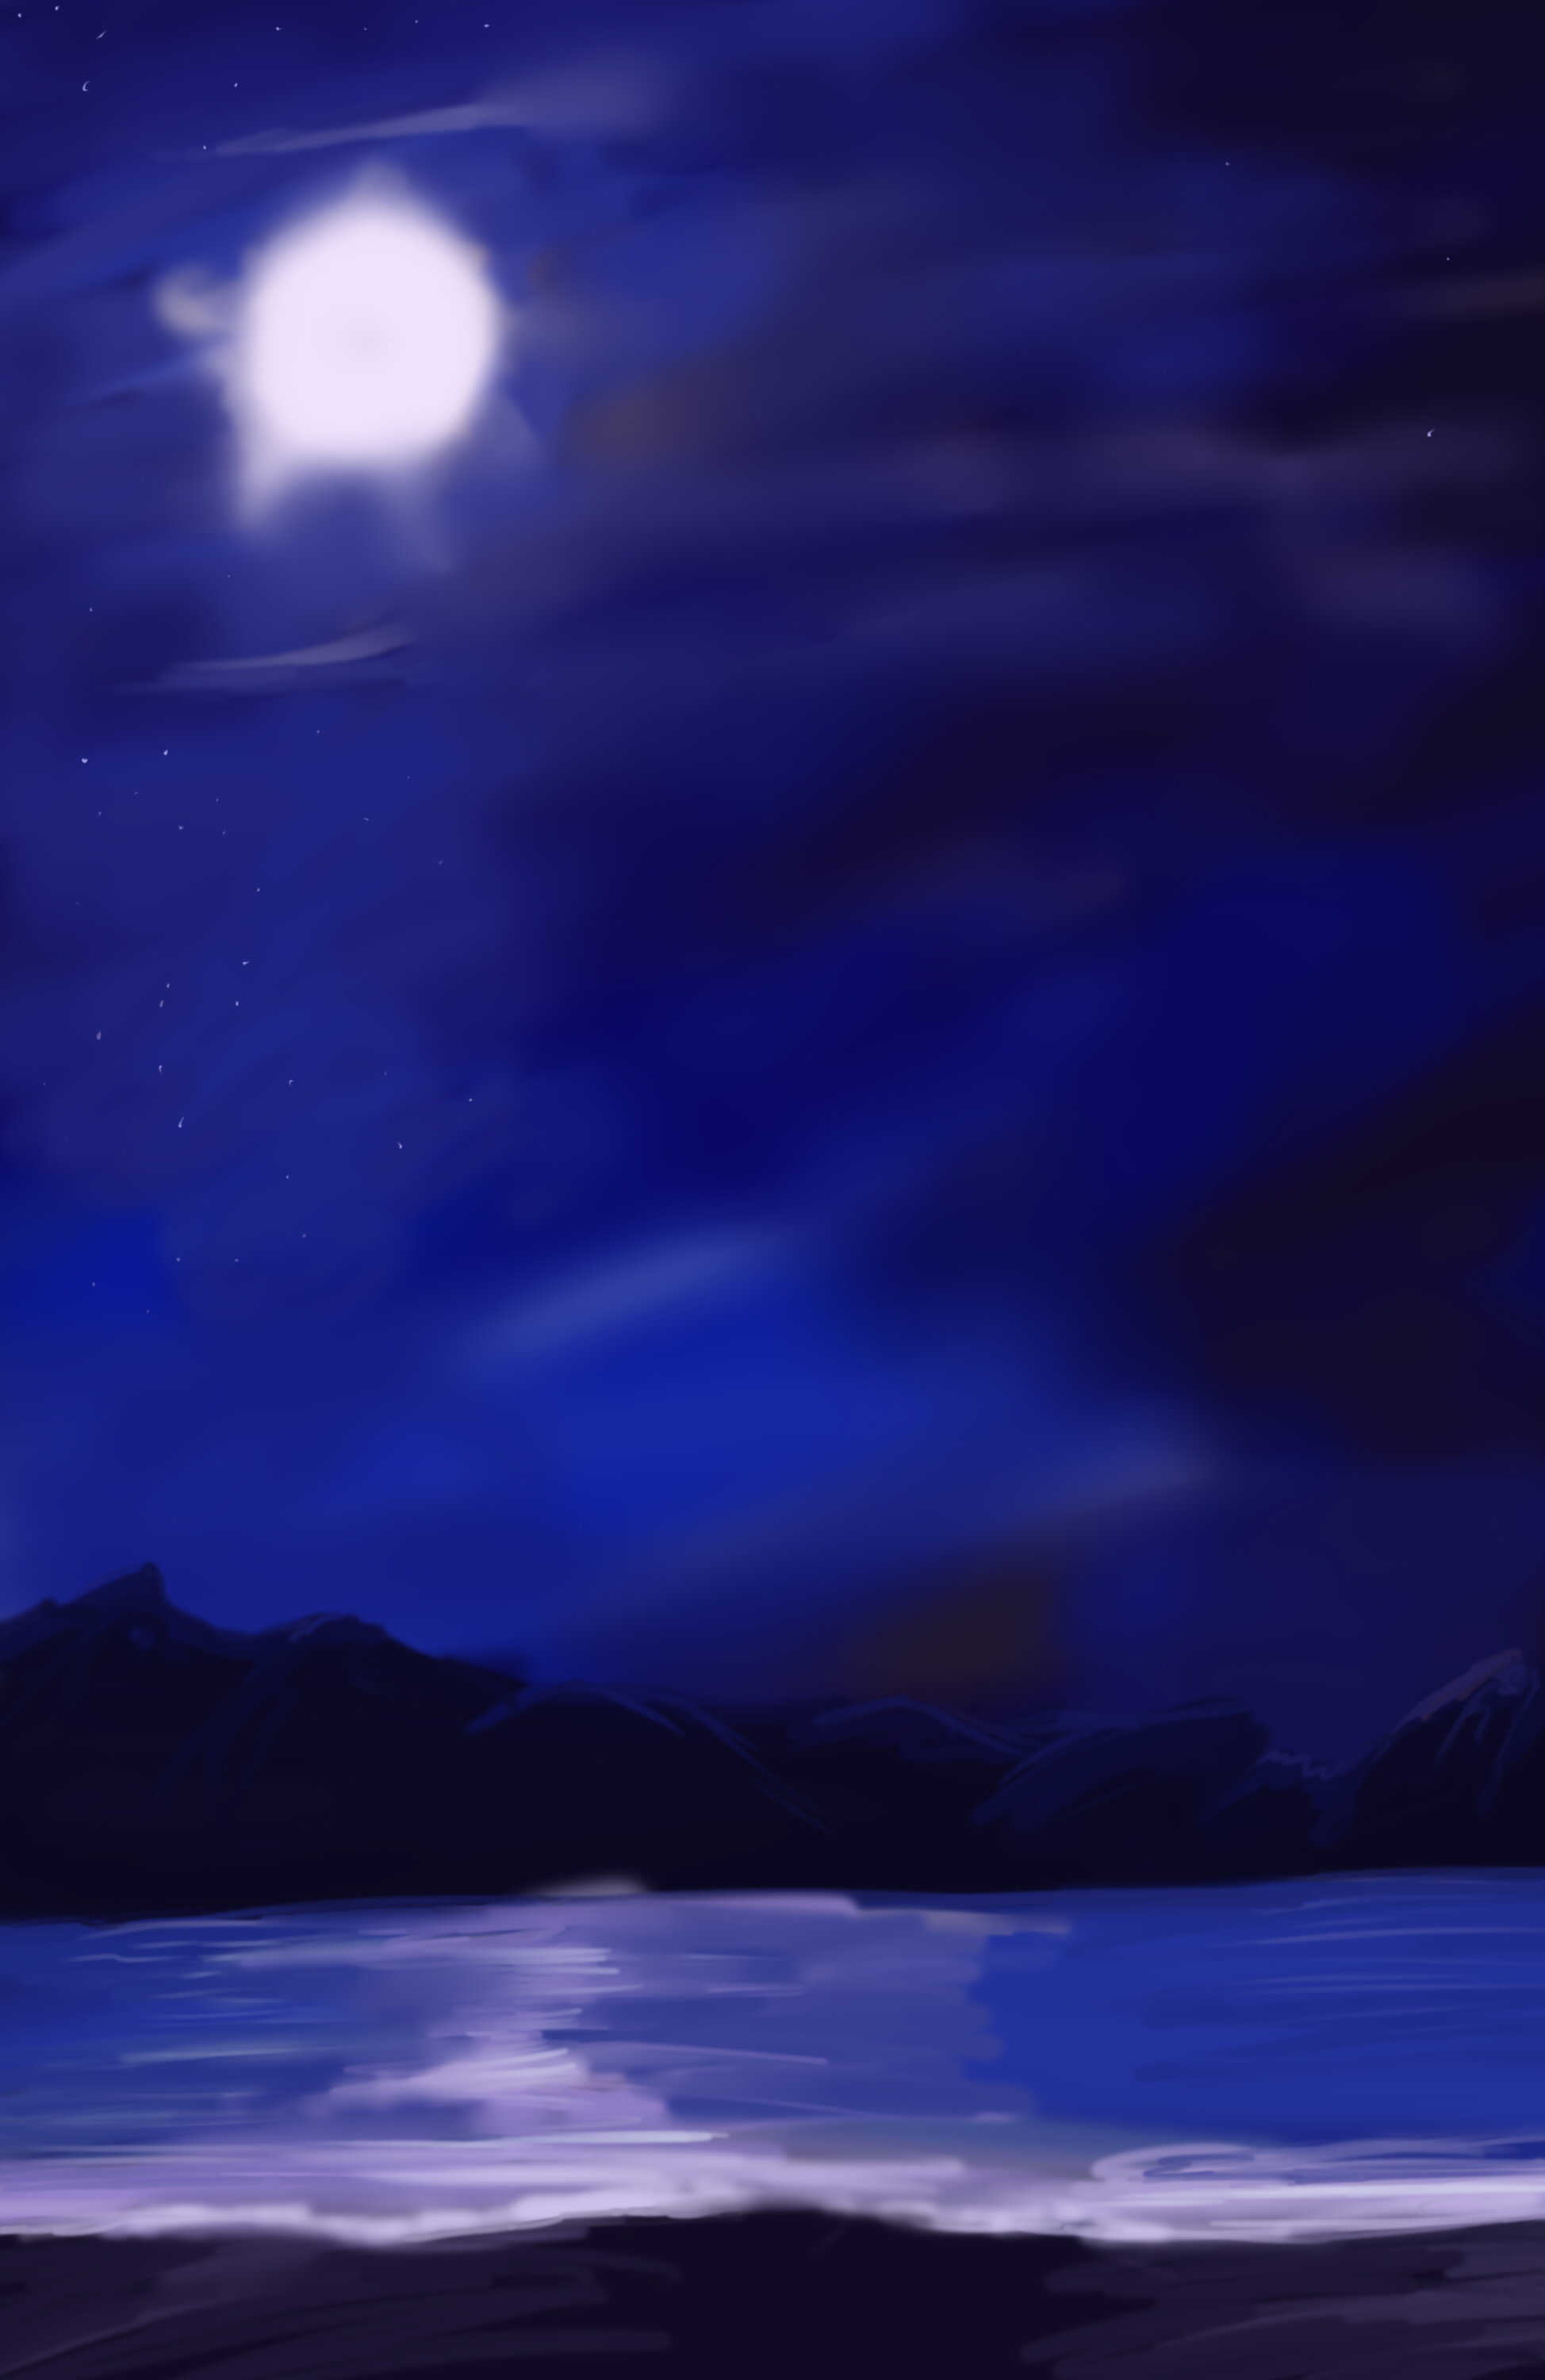 Anime Night Beach Background by wbd 1948x3000